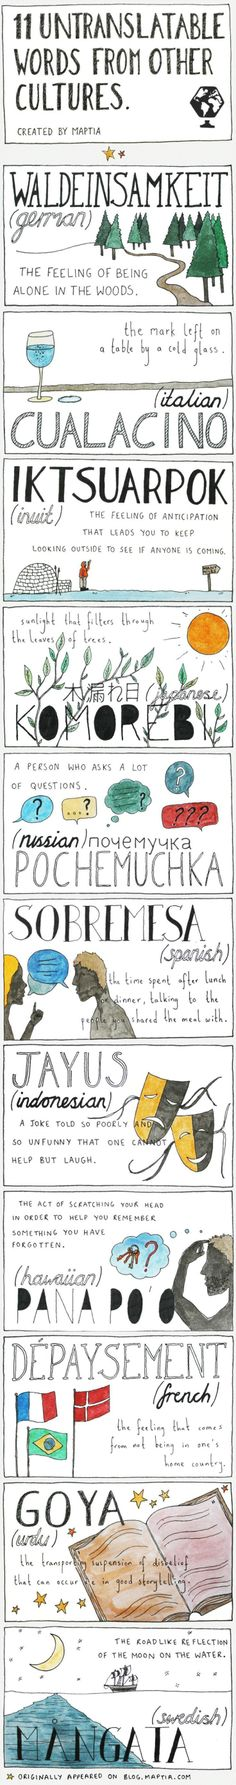 11 Untranslatable Words From Other Cultures Infographic http://www.javierotero.info/2013/09/11-palabras-sin-traduccion-que-dicen.html